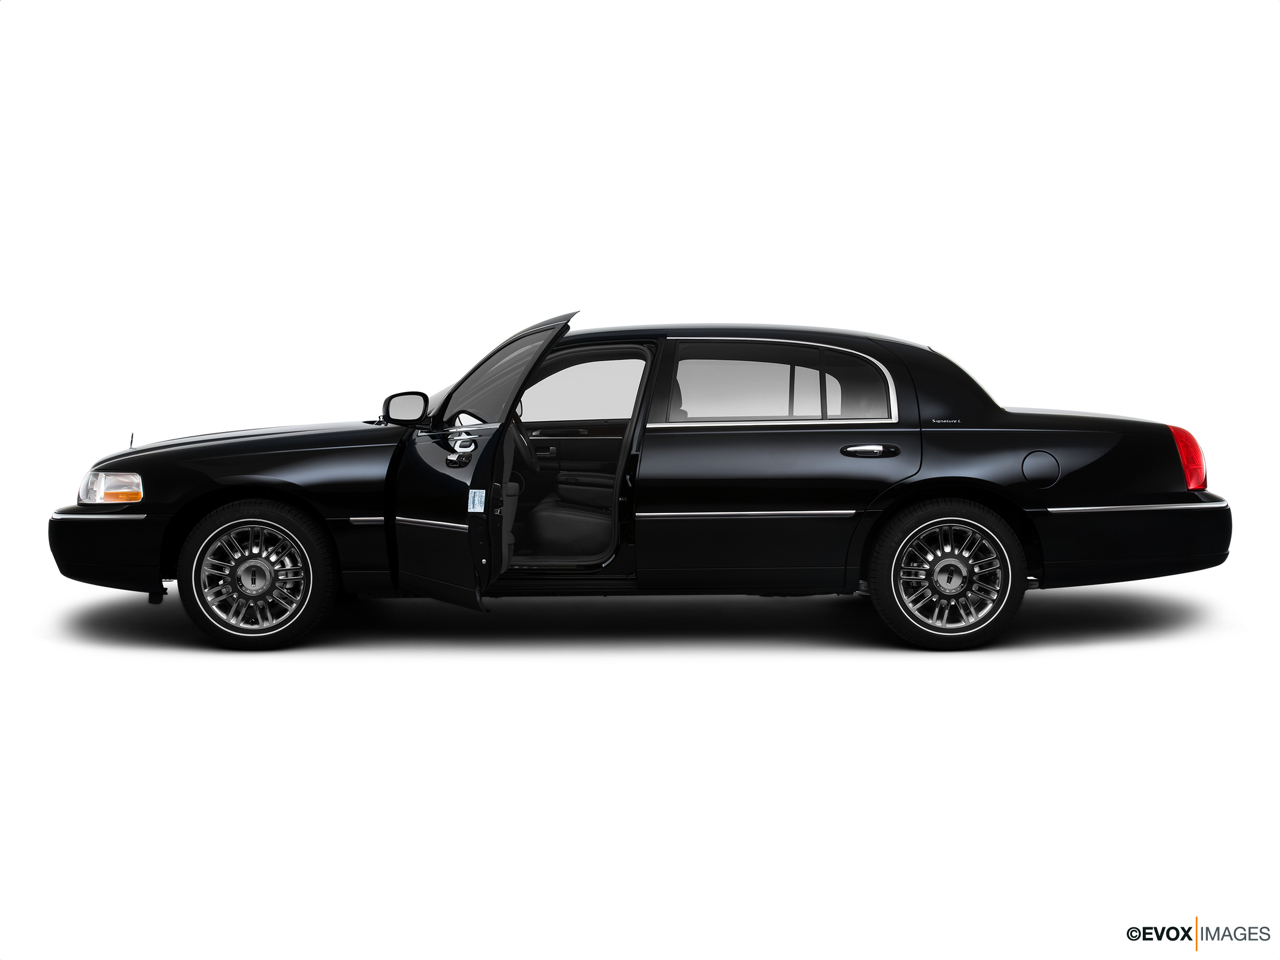 2010 Lincoln Town Car Signature L Driver's side profile with drivers side door open.